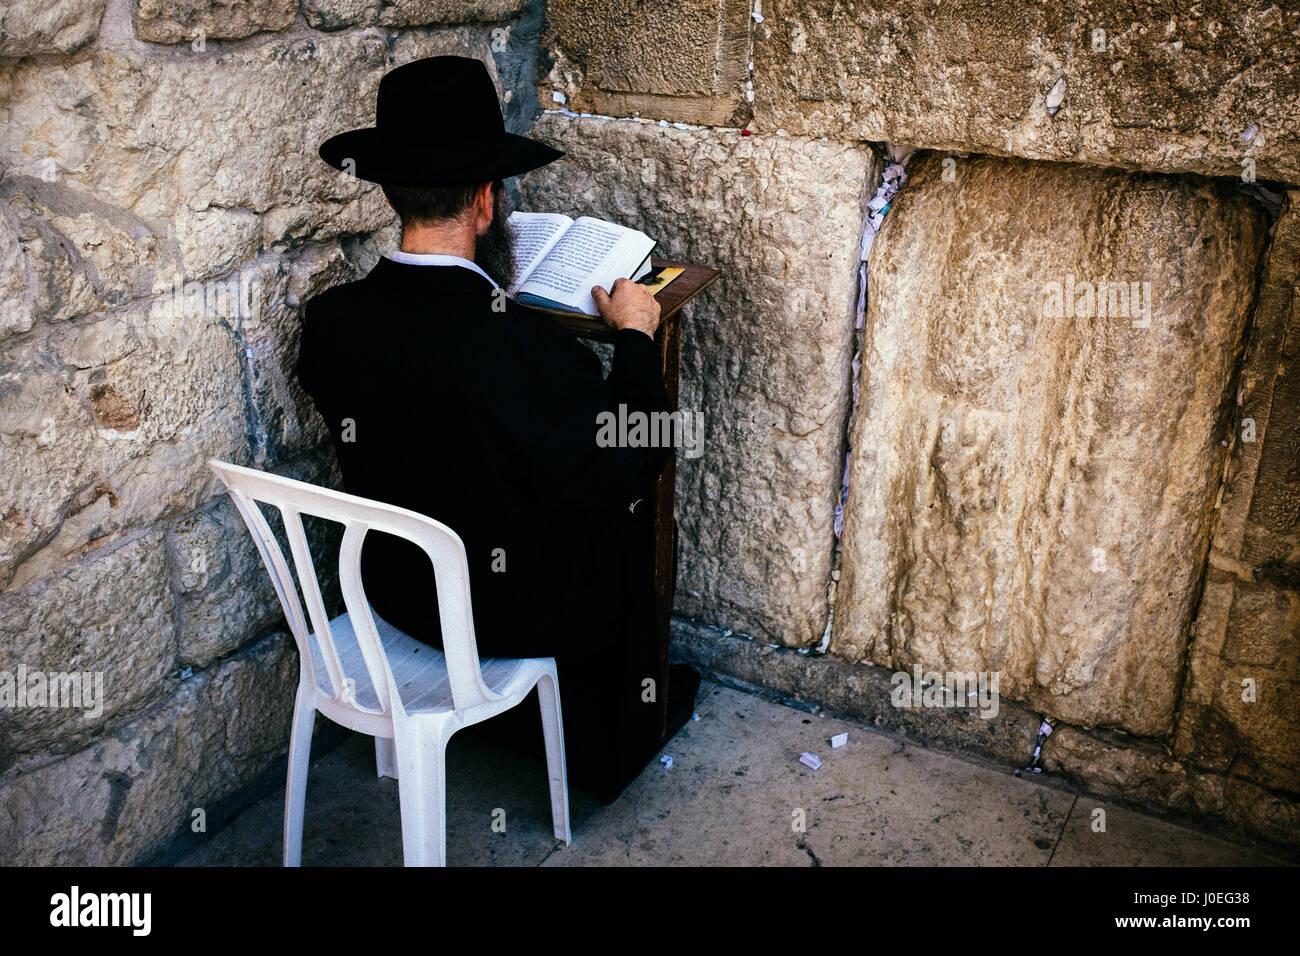 An orthodox Jews sits in the corner up against the Wailing Wall saying prayers from a Siddur praying book. - Stock Image